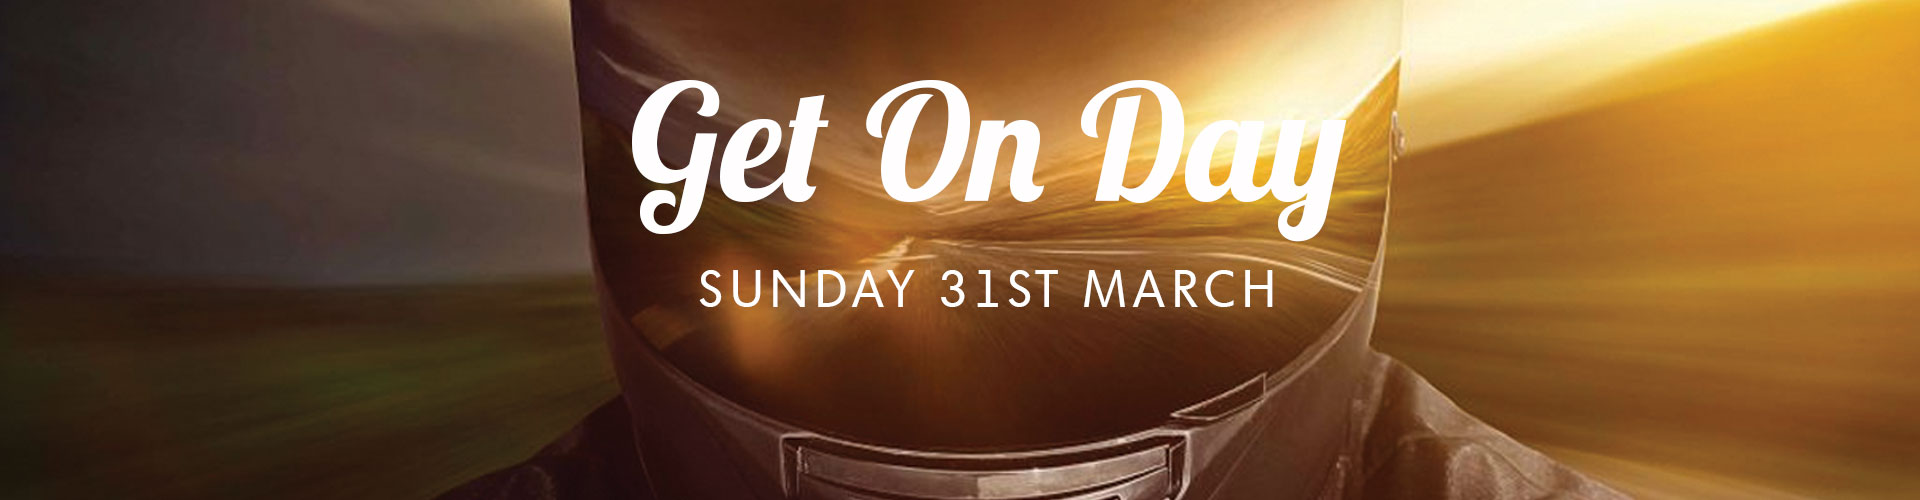 Get on day - 31st March